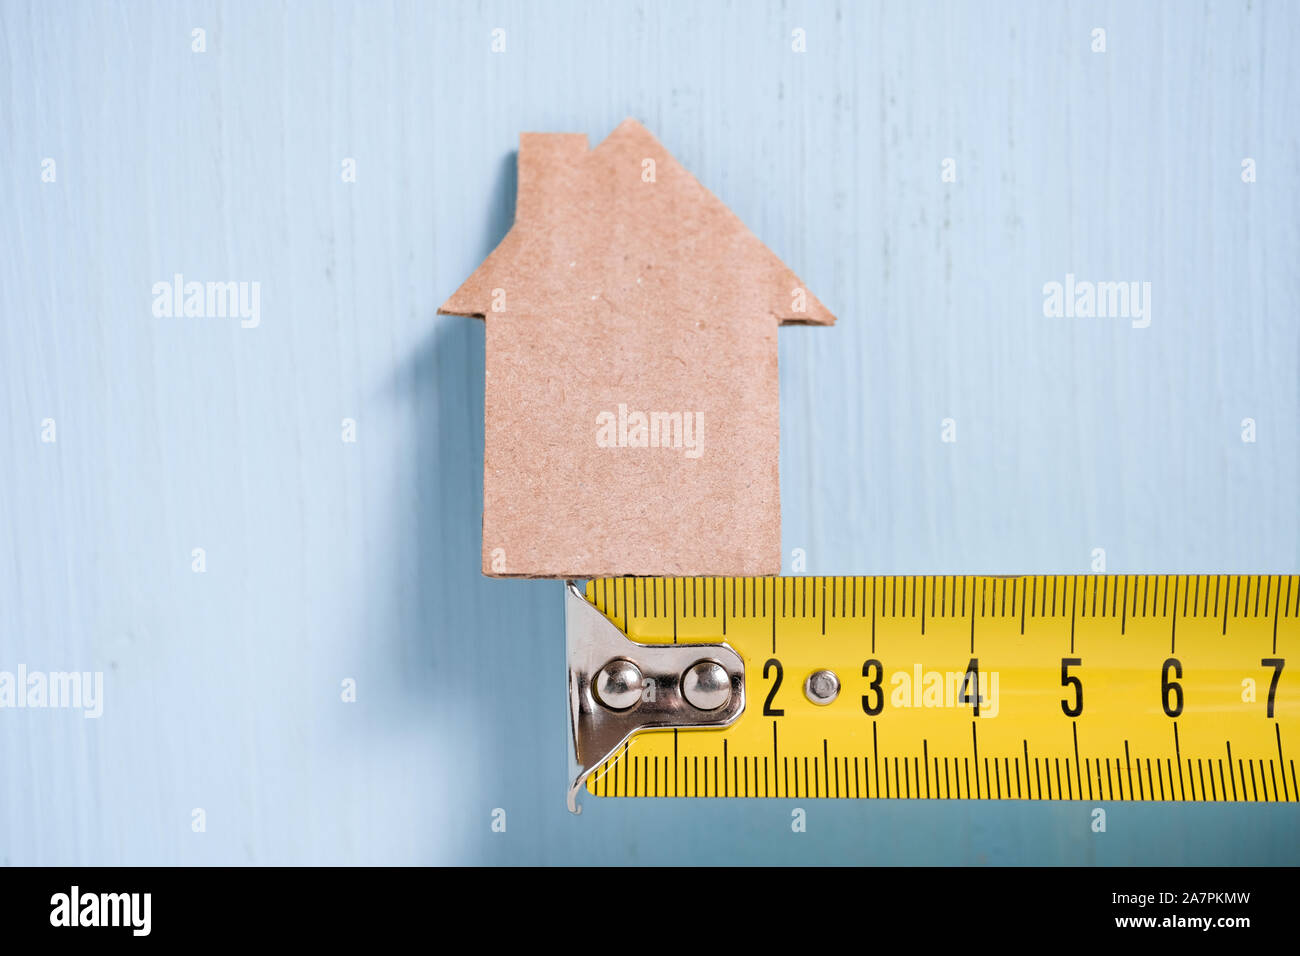 Cardboard cutout house on metal measuring tape on wooden blue background. Concept of surveying, budgeting, repairing. Stock Photo